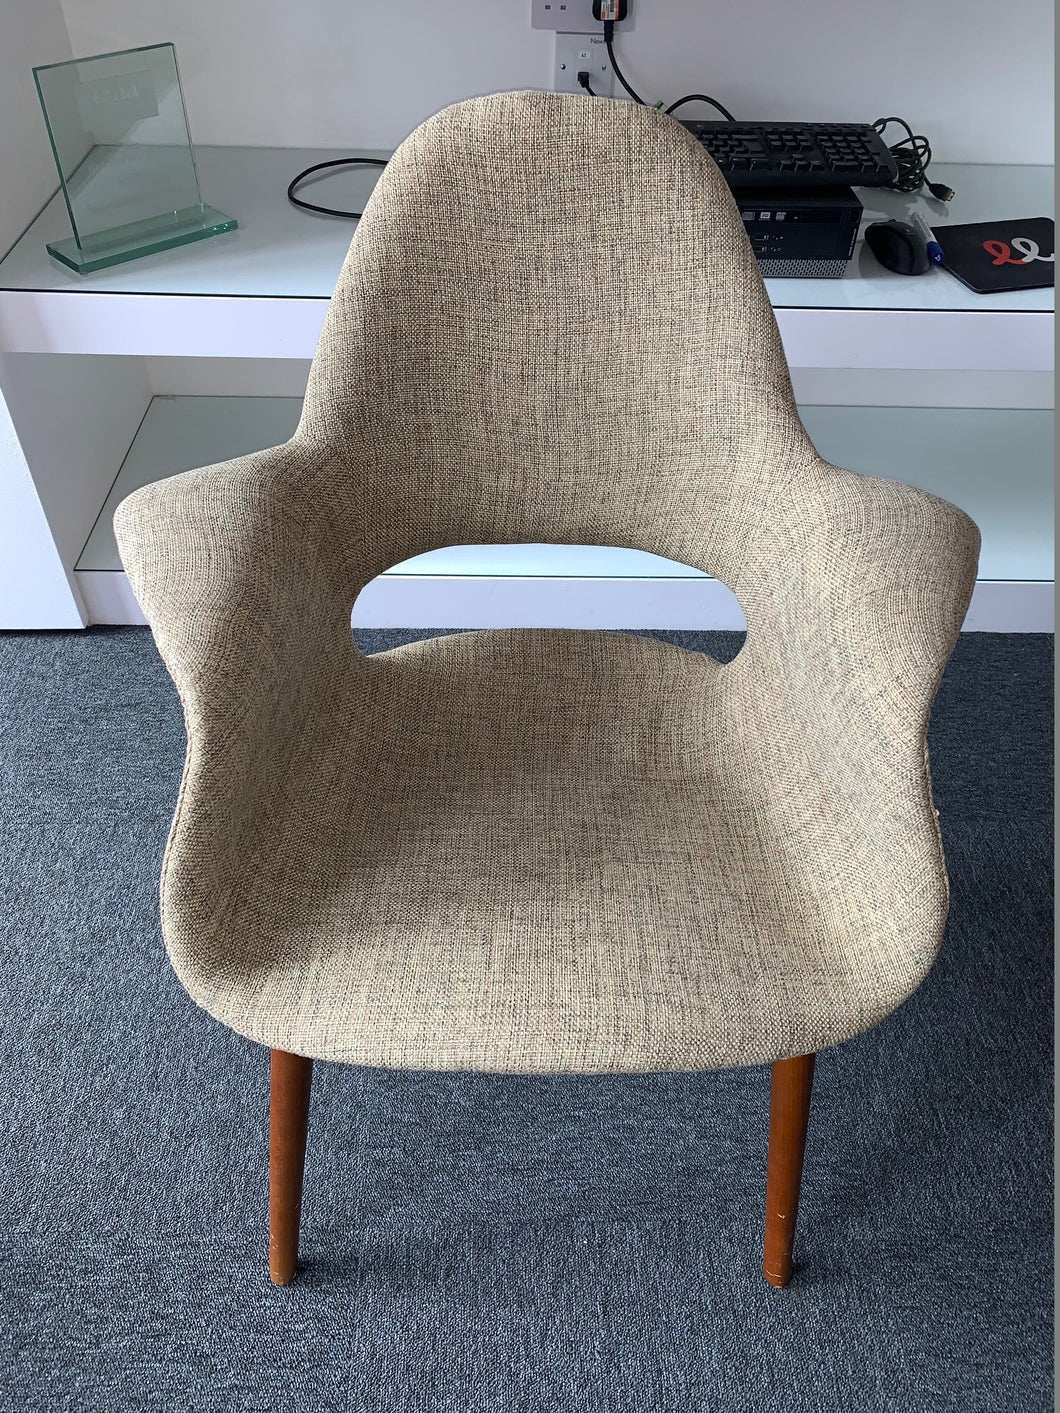 Charles Eames Style Fabric Meeting/Reception Chair - Flogit2us.com